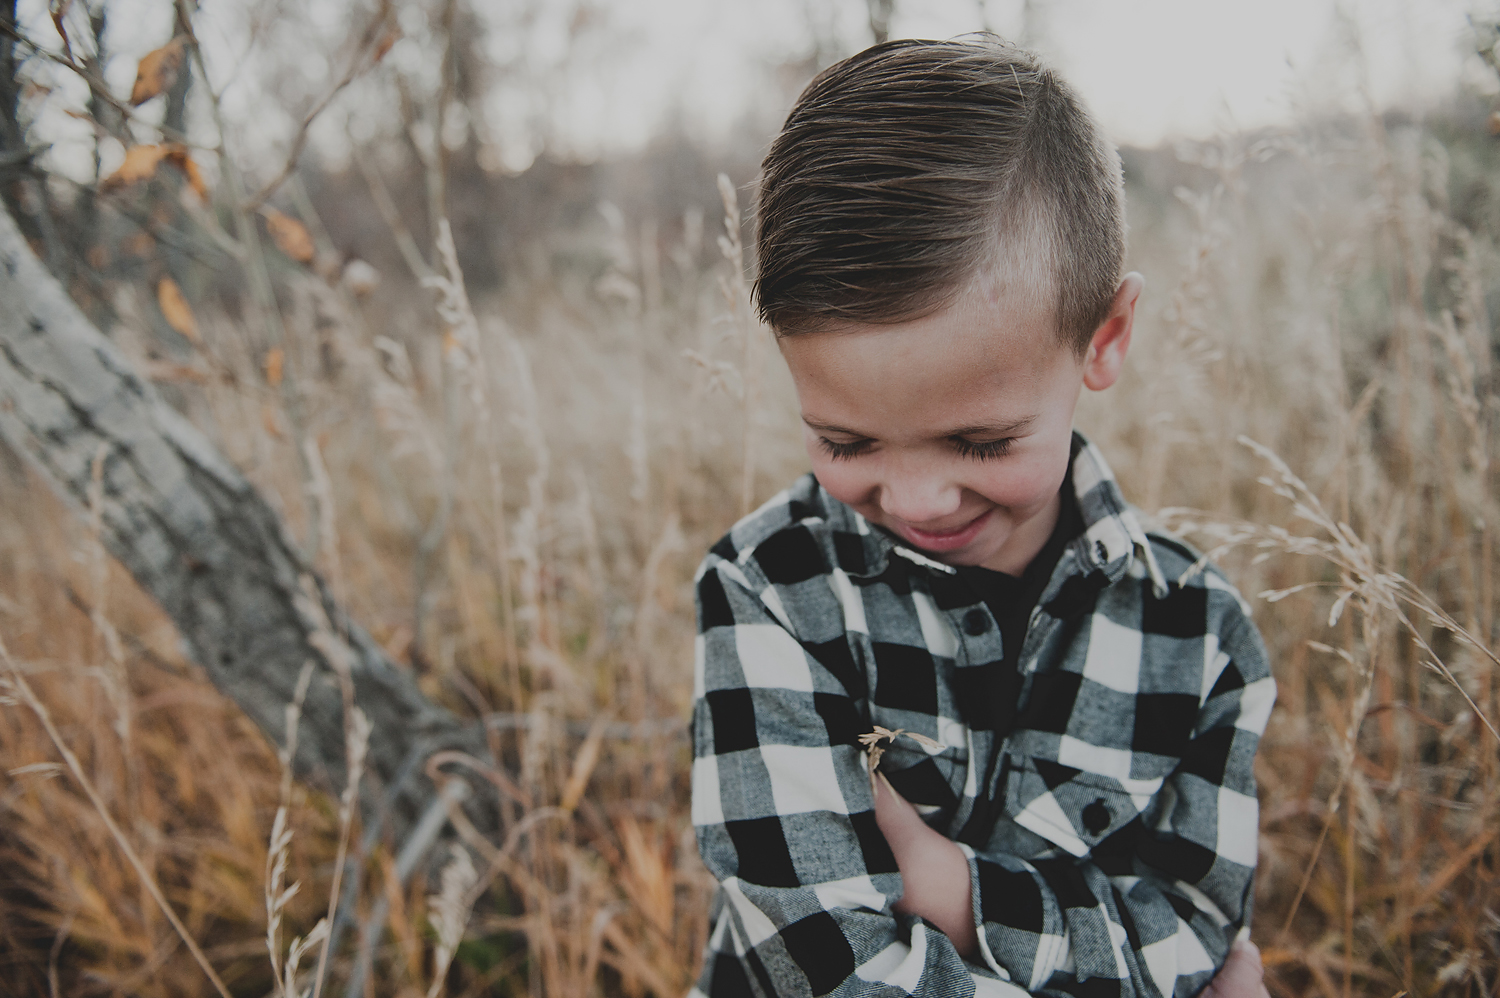 Little boy looking at ground laughing